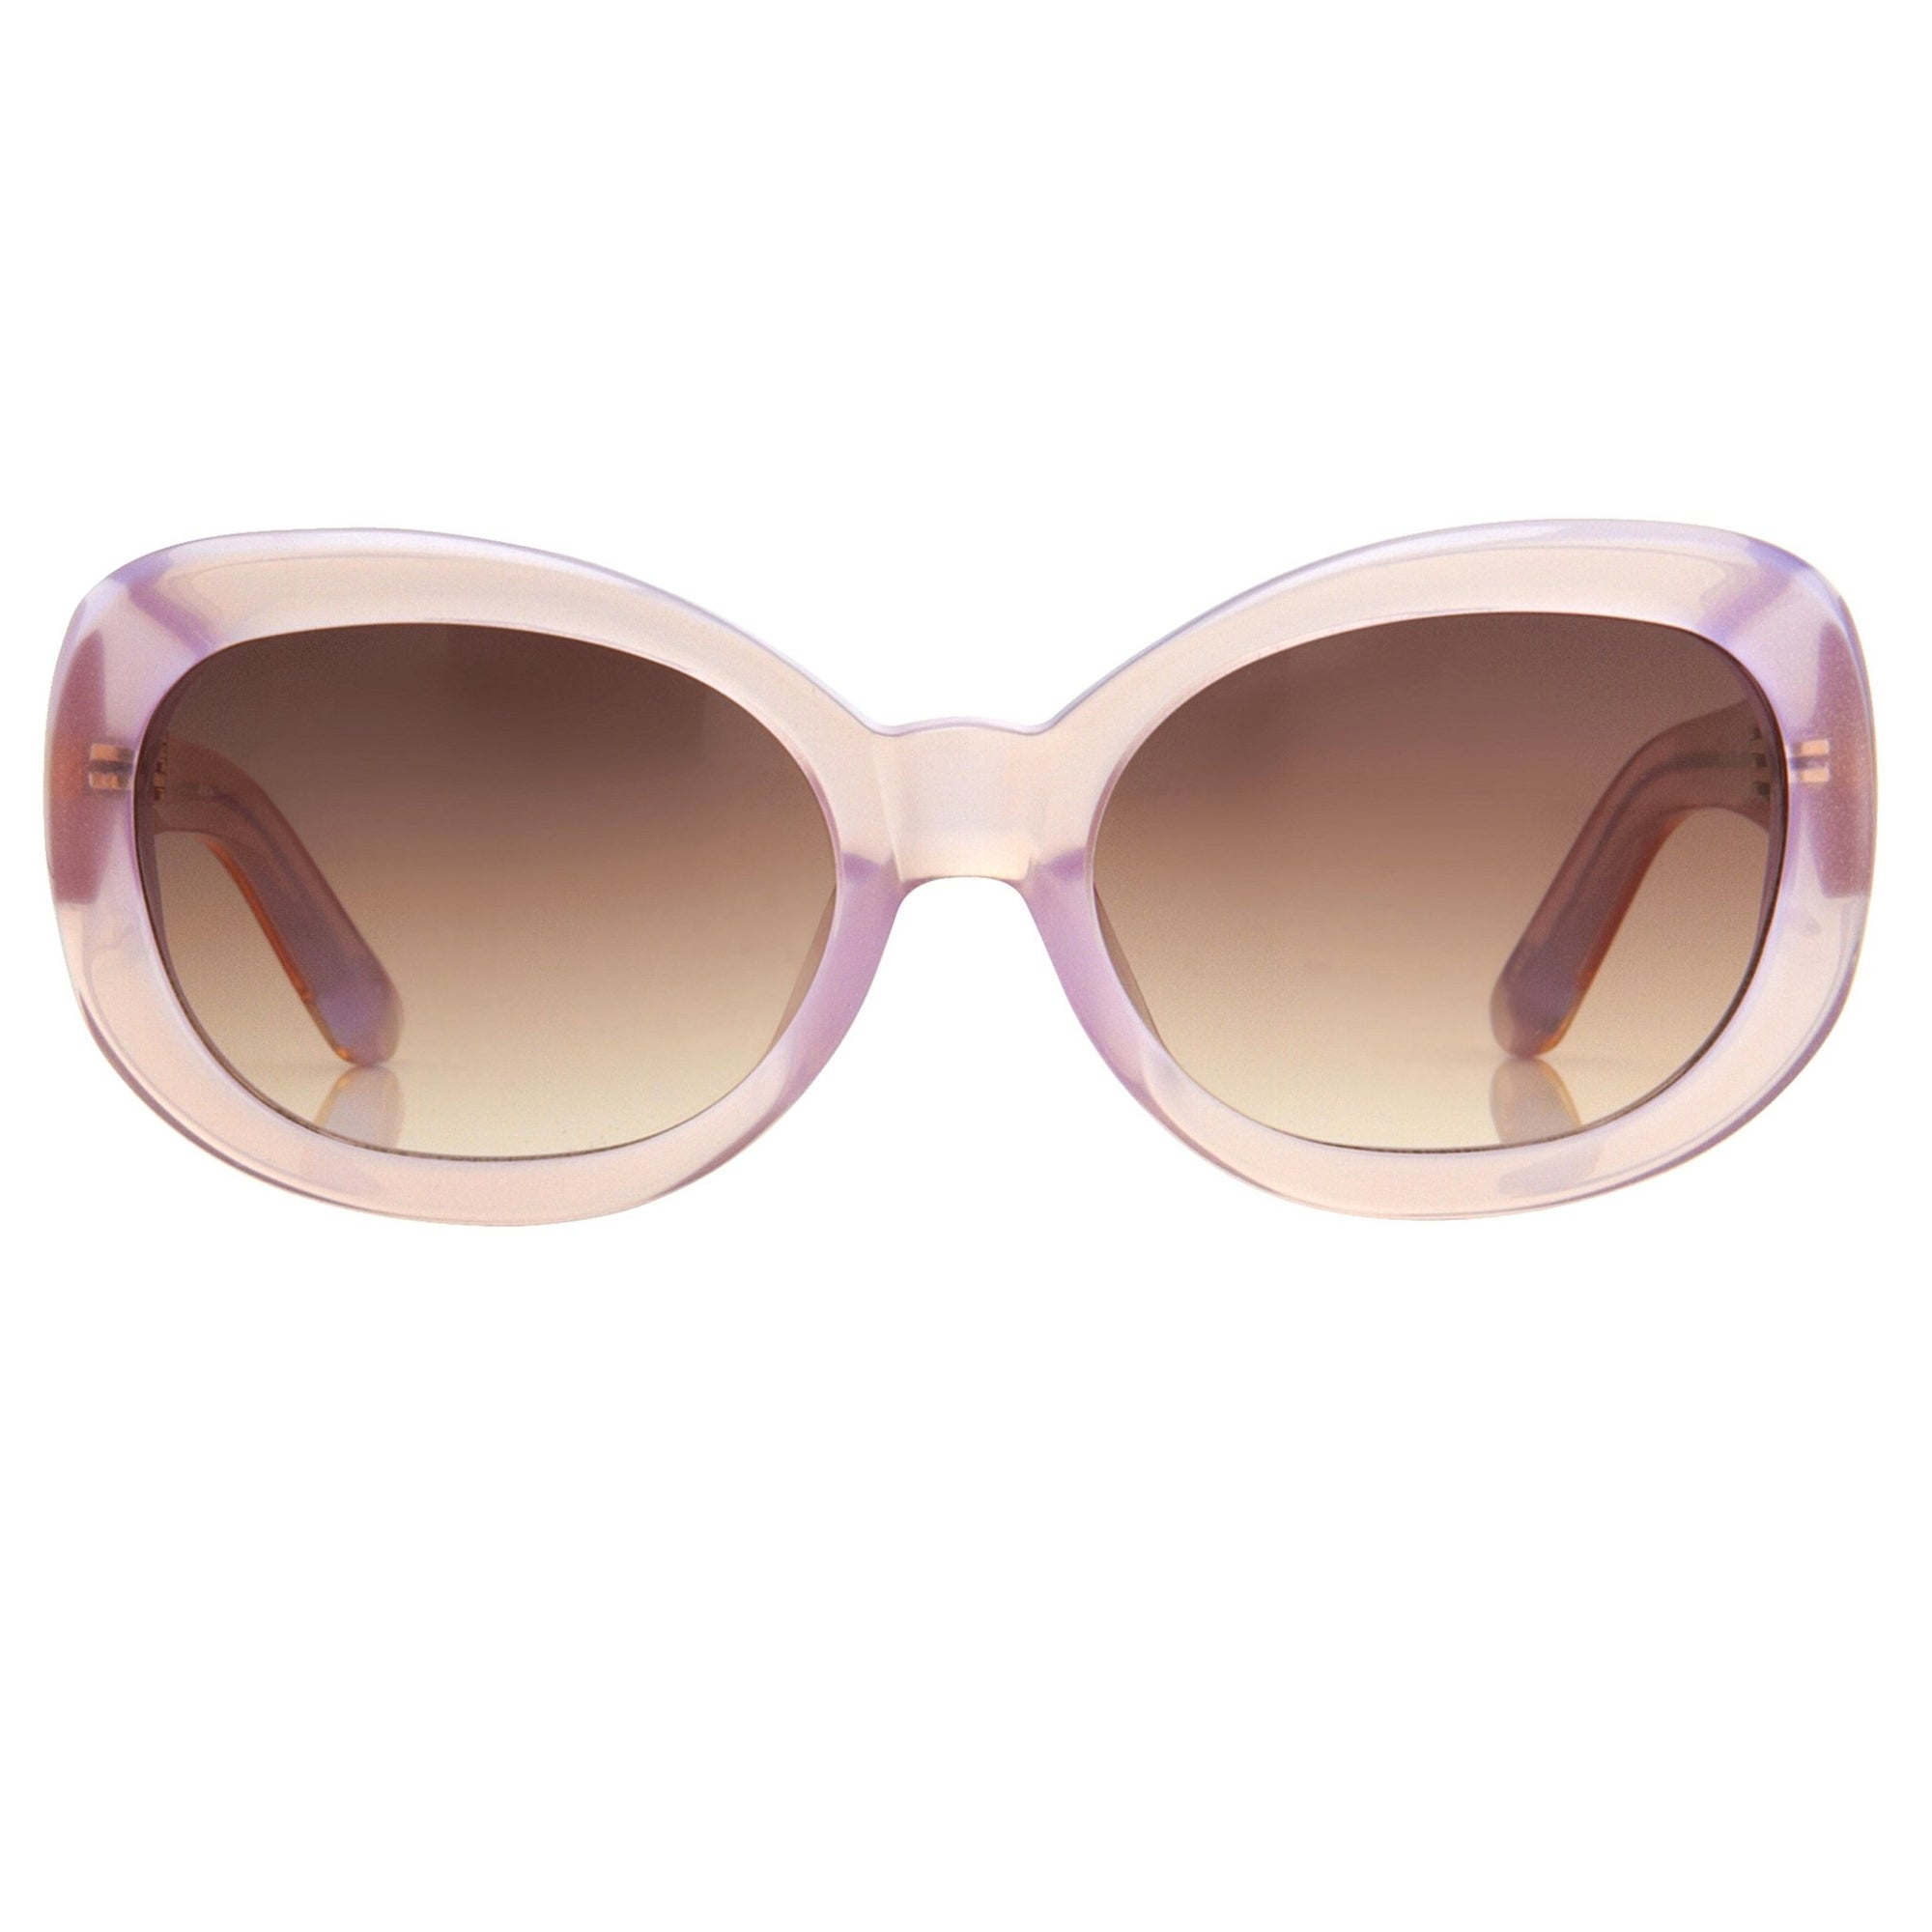 Agent Provocateur Sunglasses Round Beige and Brown